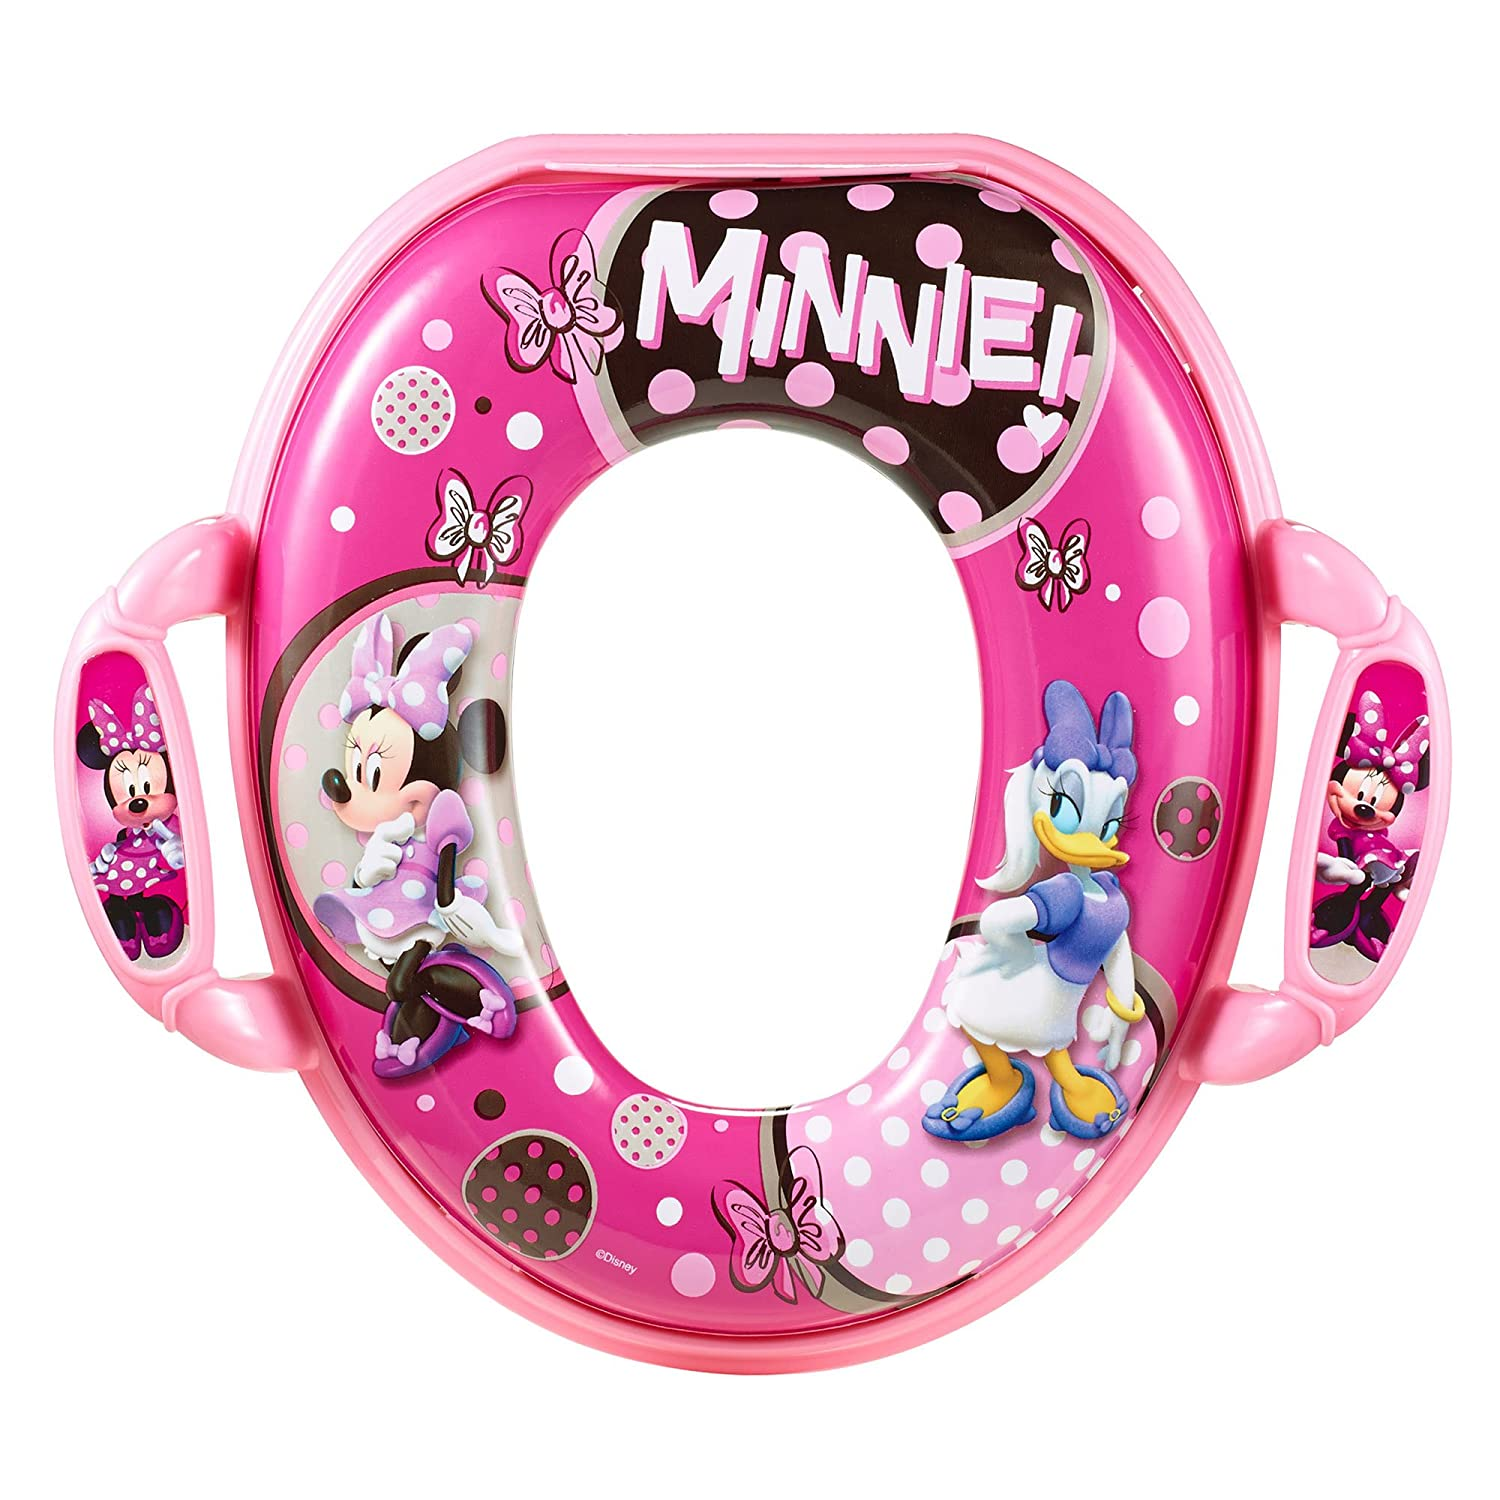 The First Years Mickey Soft Potty Seat Y10314CA1